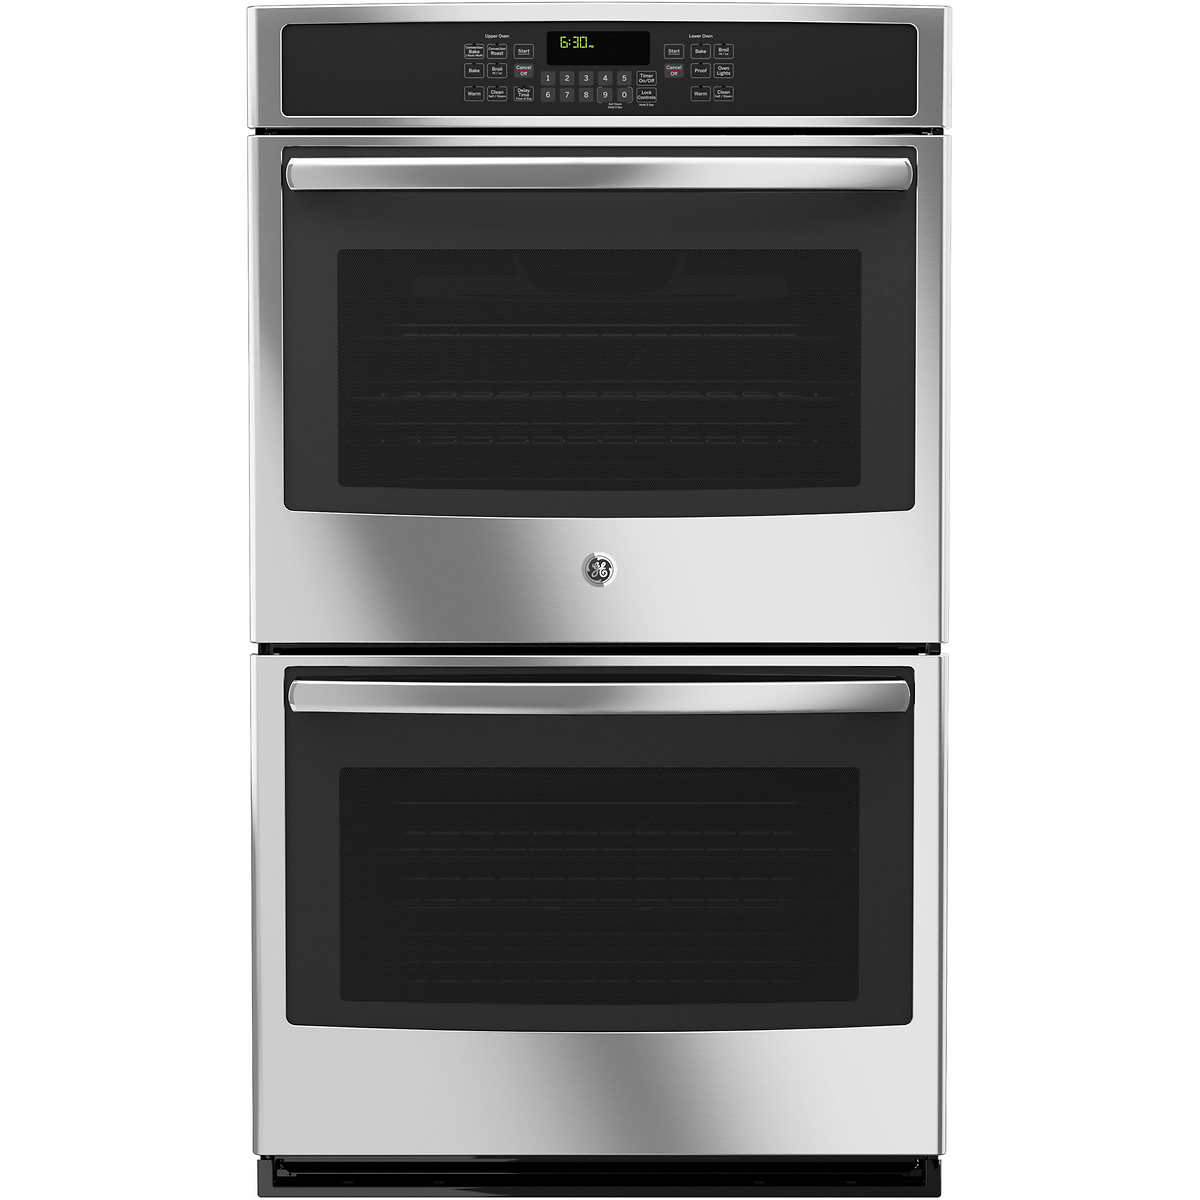 Ge Service Phone Number Ge 30 Built In Double Wall Oven With Convection In Stainless Steel